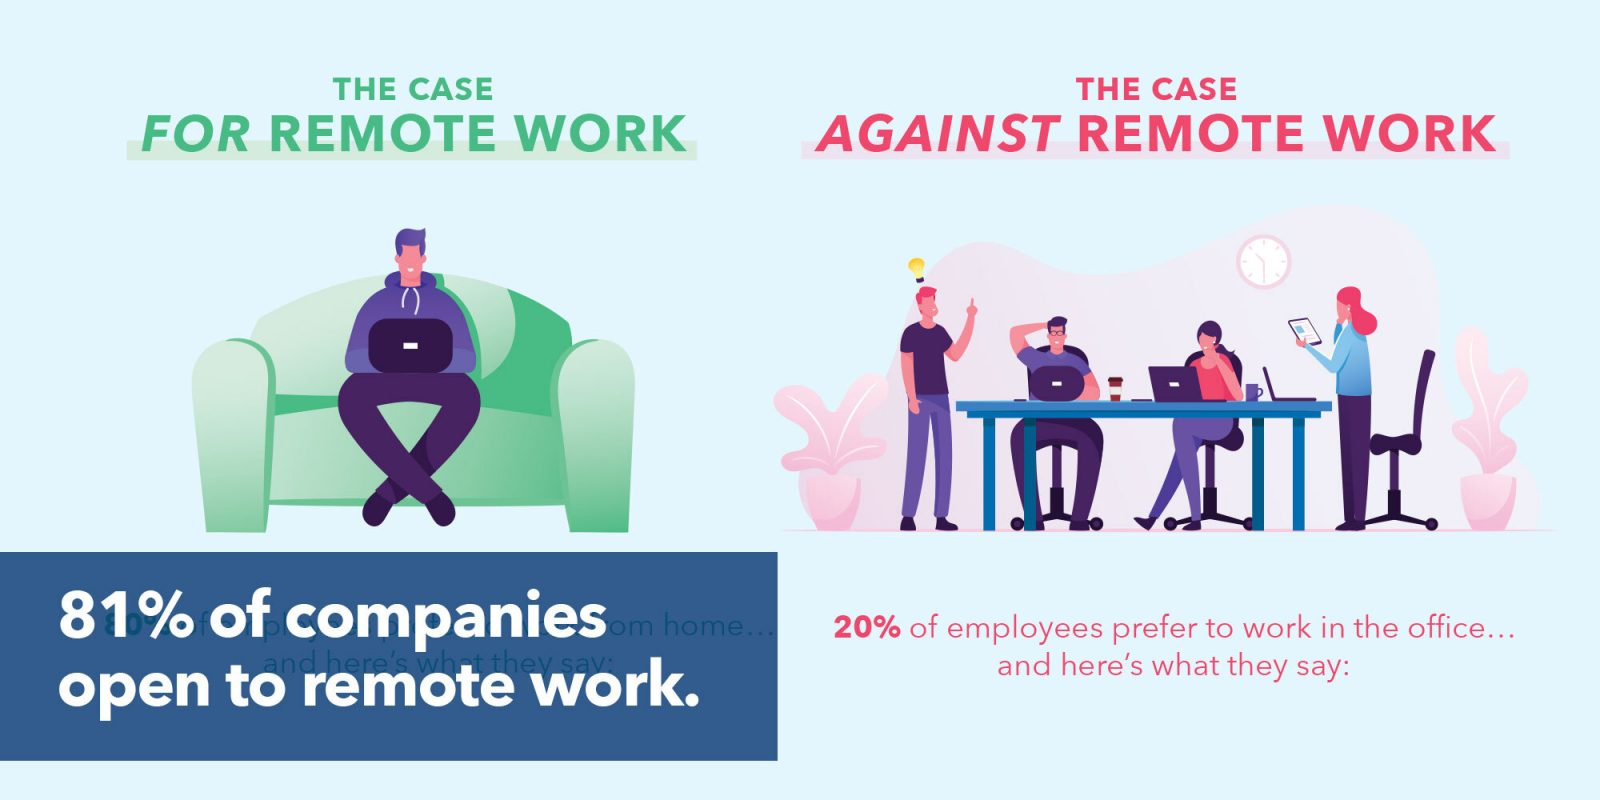 81% of companies open to remote work long-term.